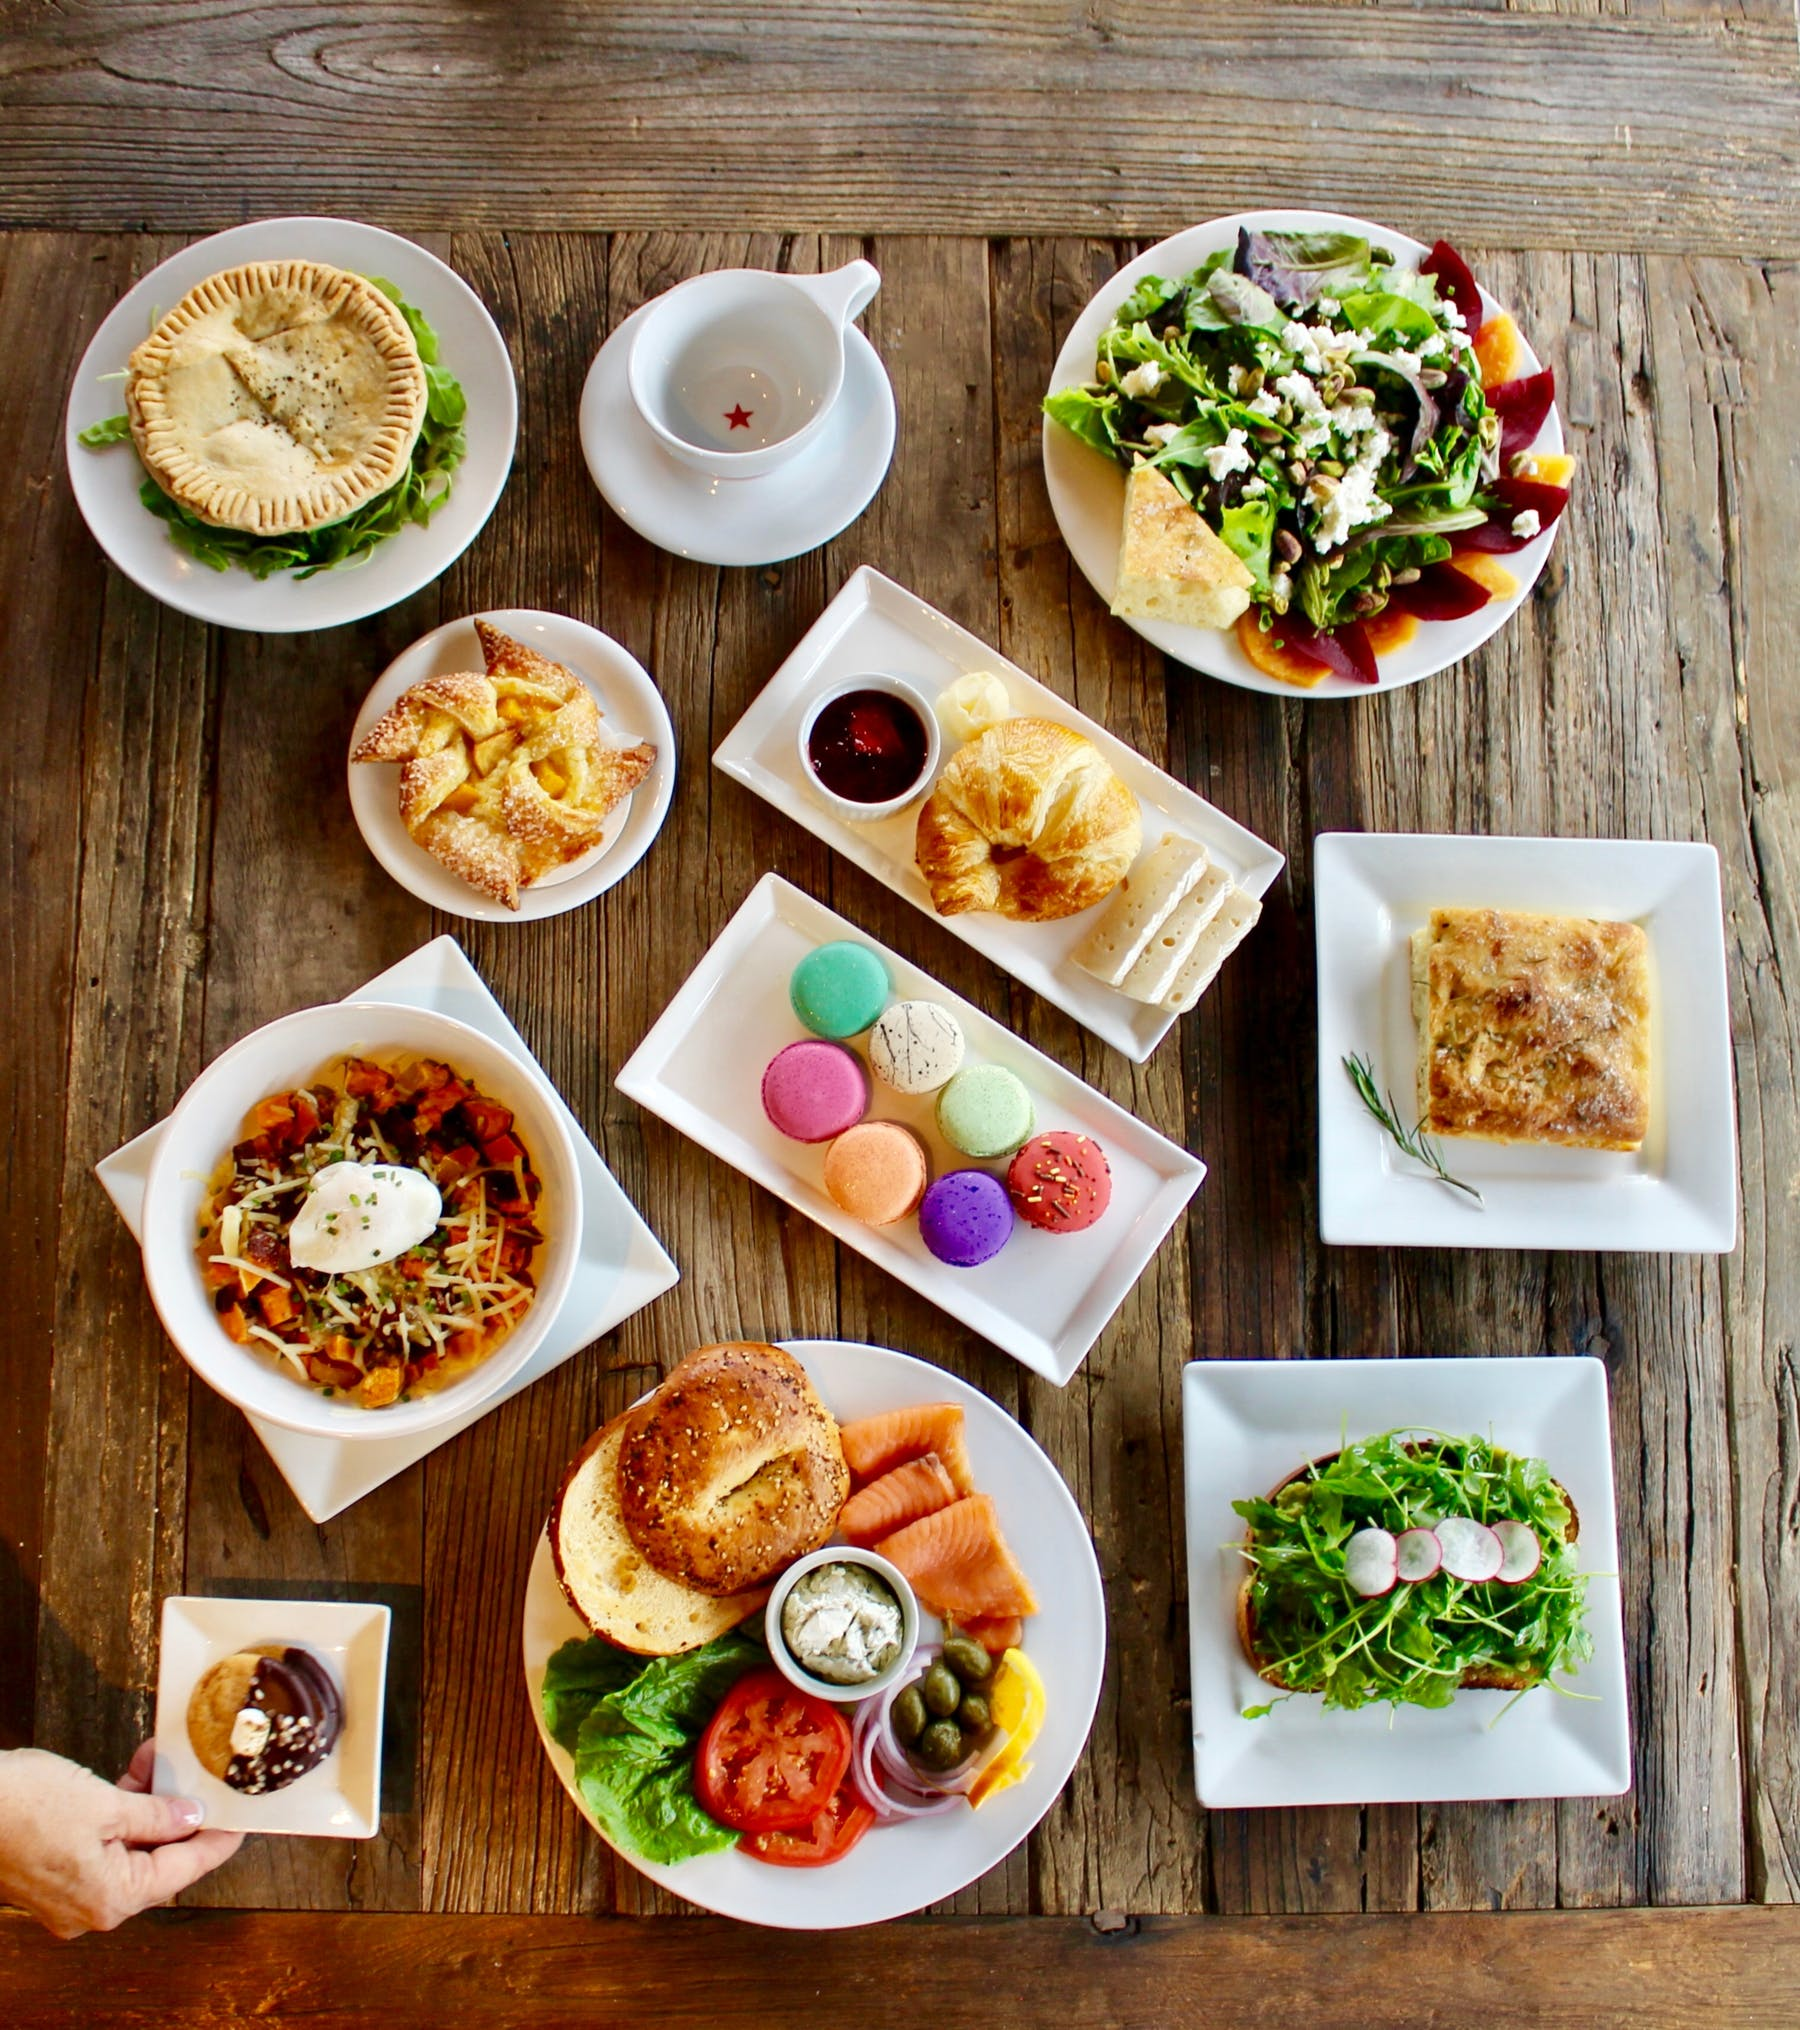 an overview of a table filled with multiple plates of food